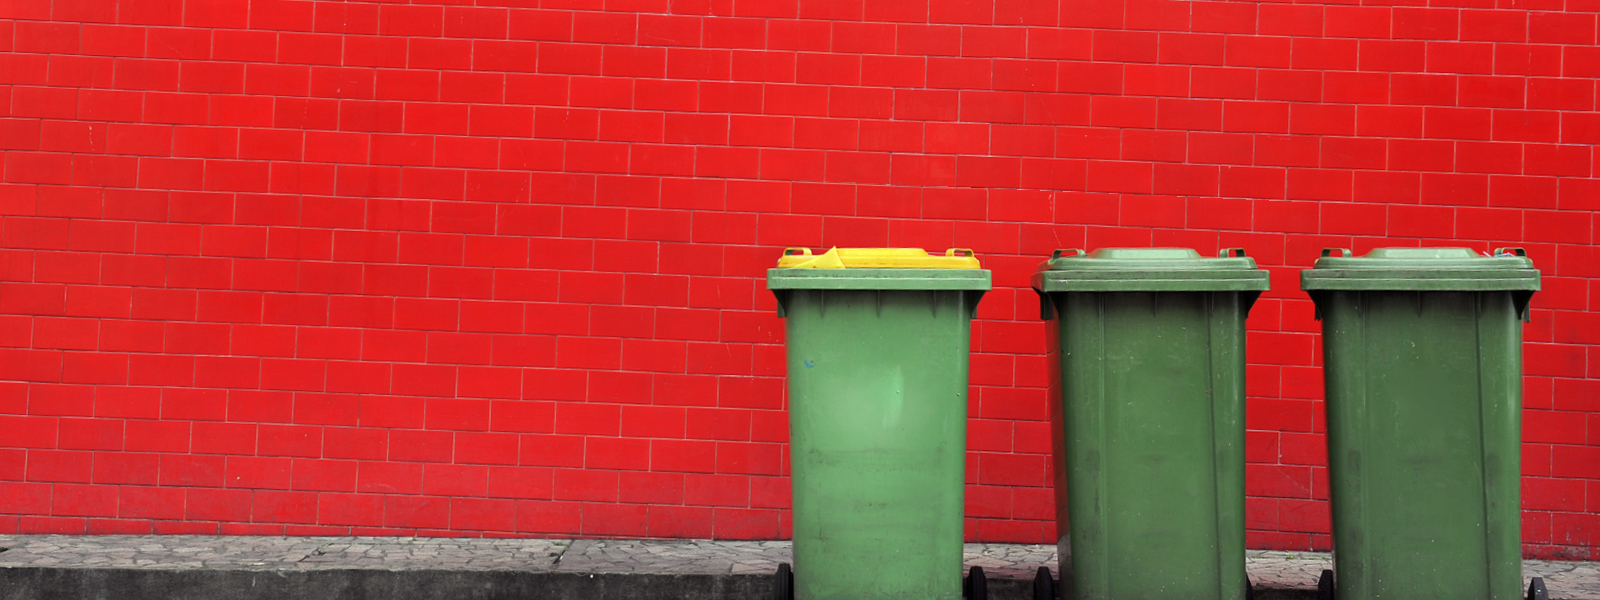 General and recycling bins against red wall